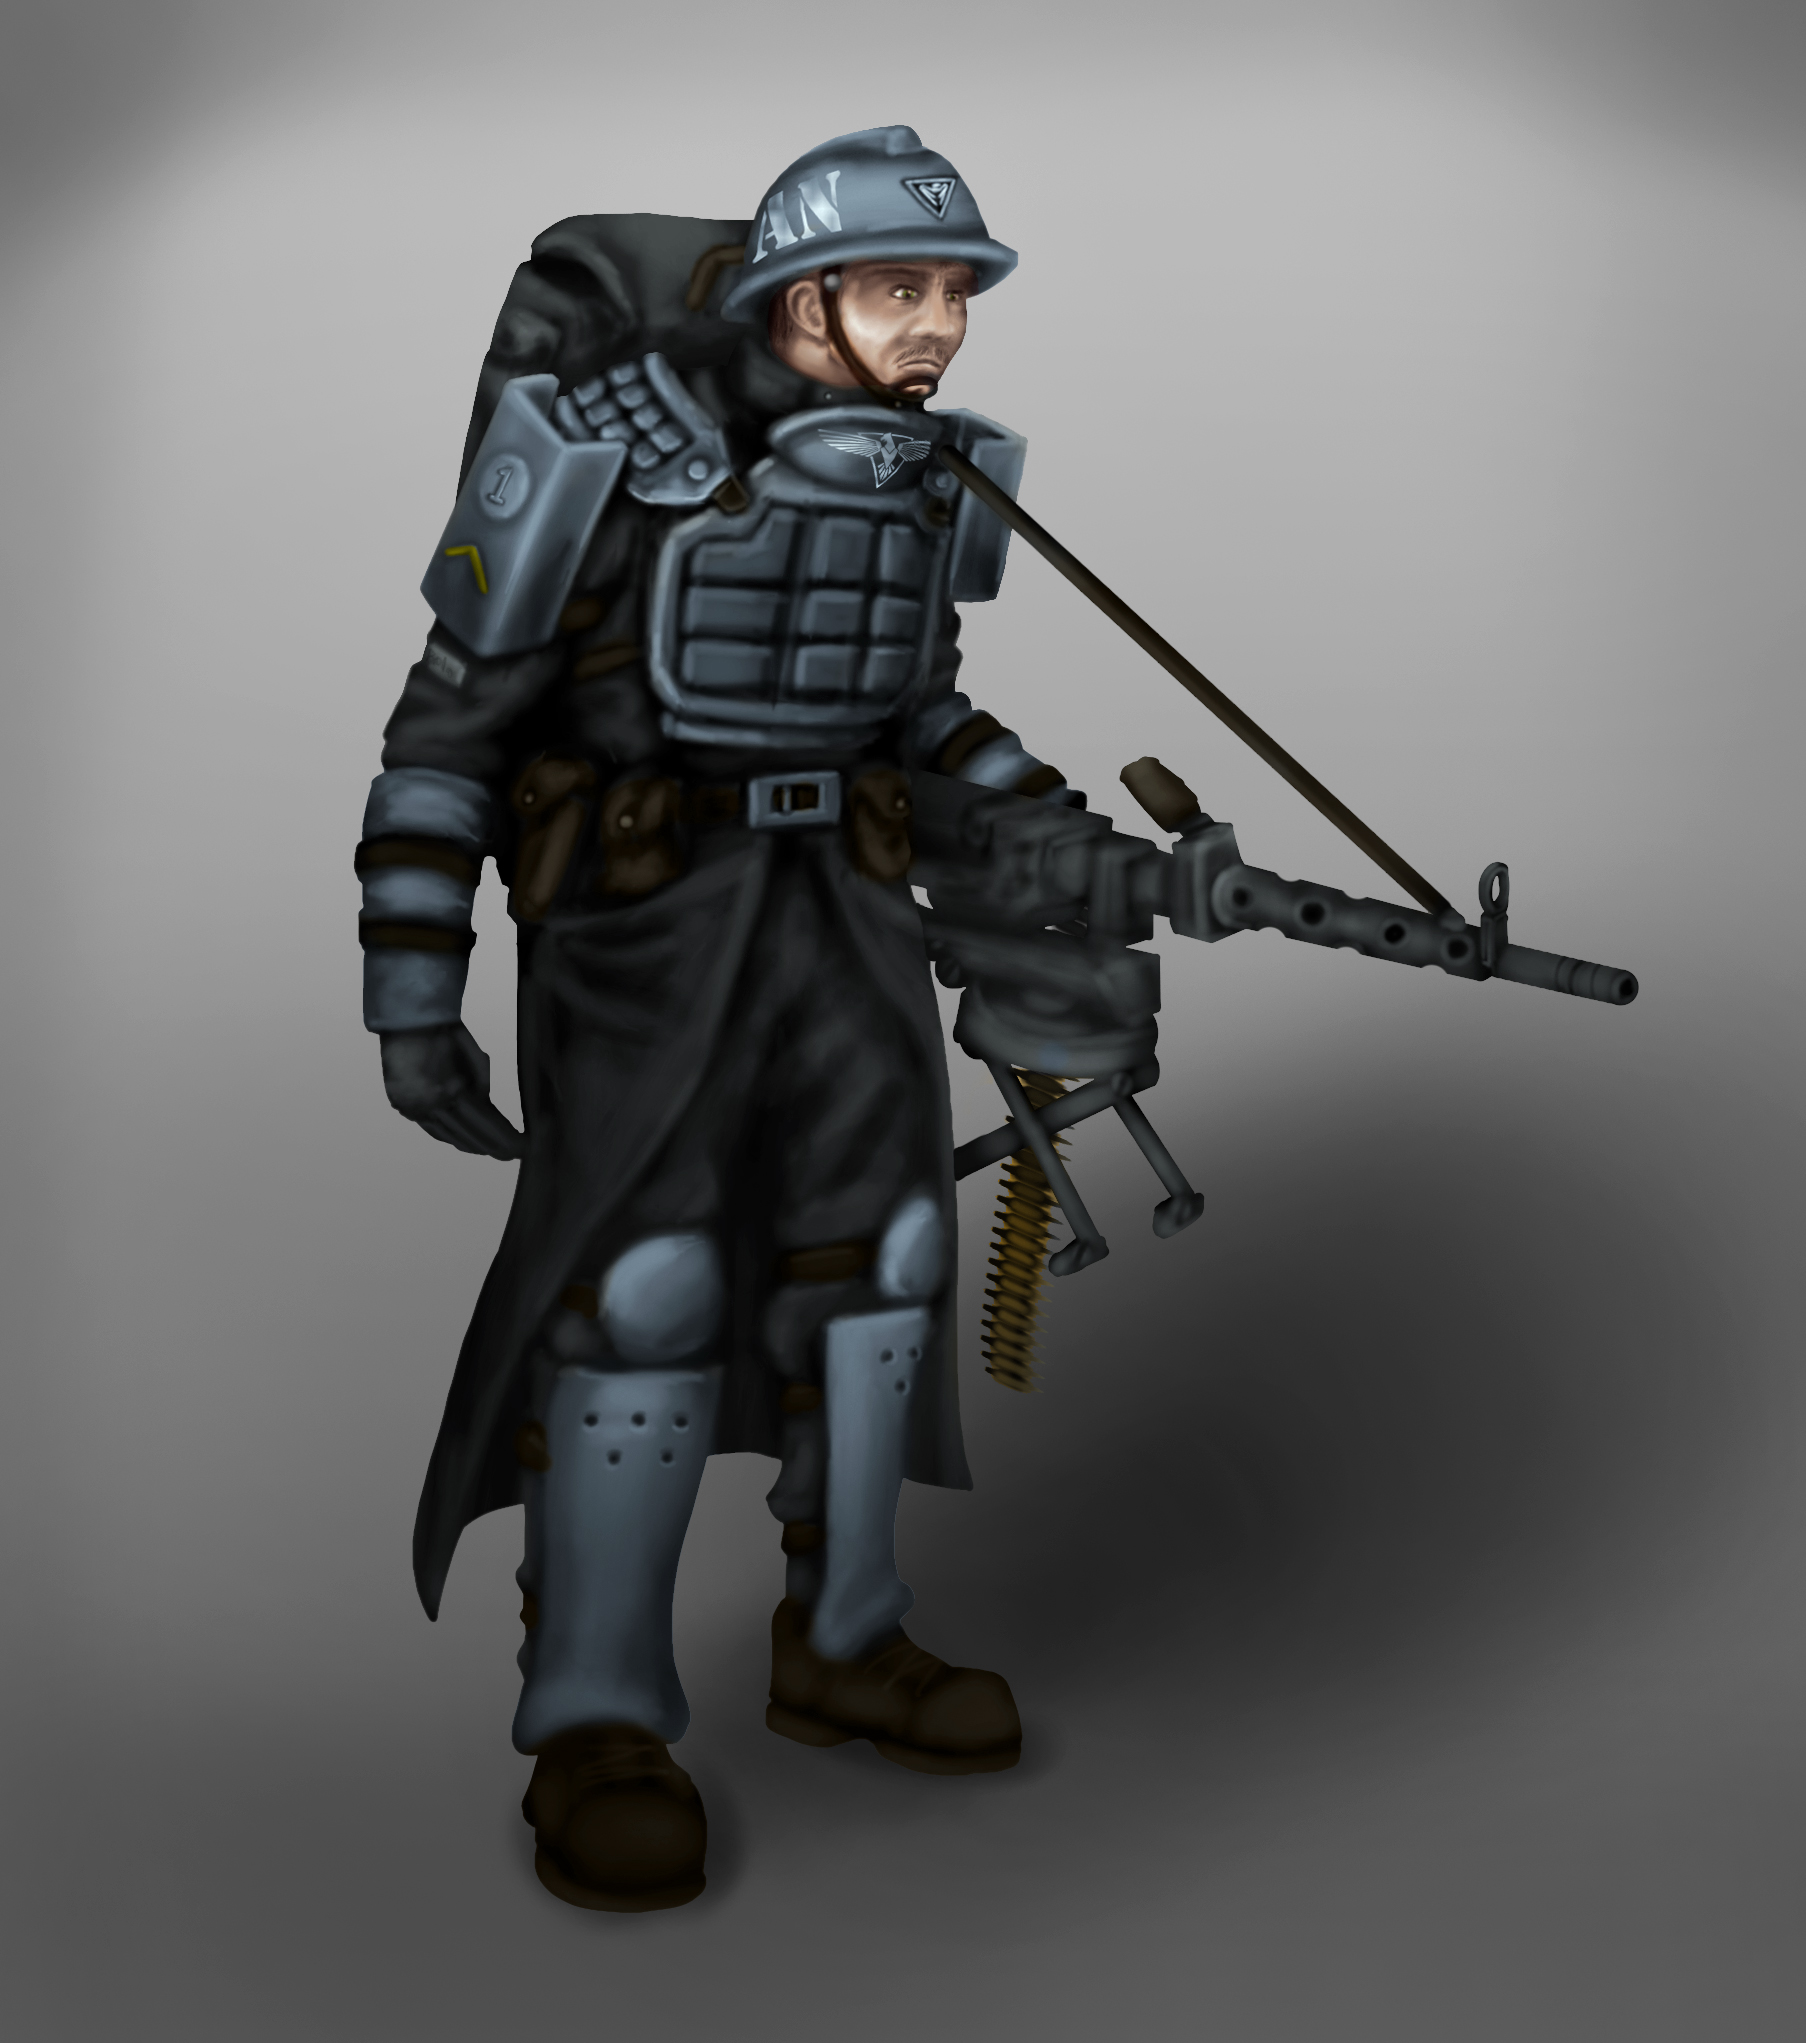 Heavy Defender Concept Image Red Alert 3 Paradox Mod For